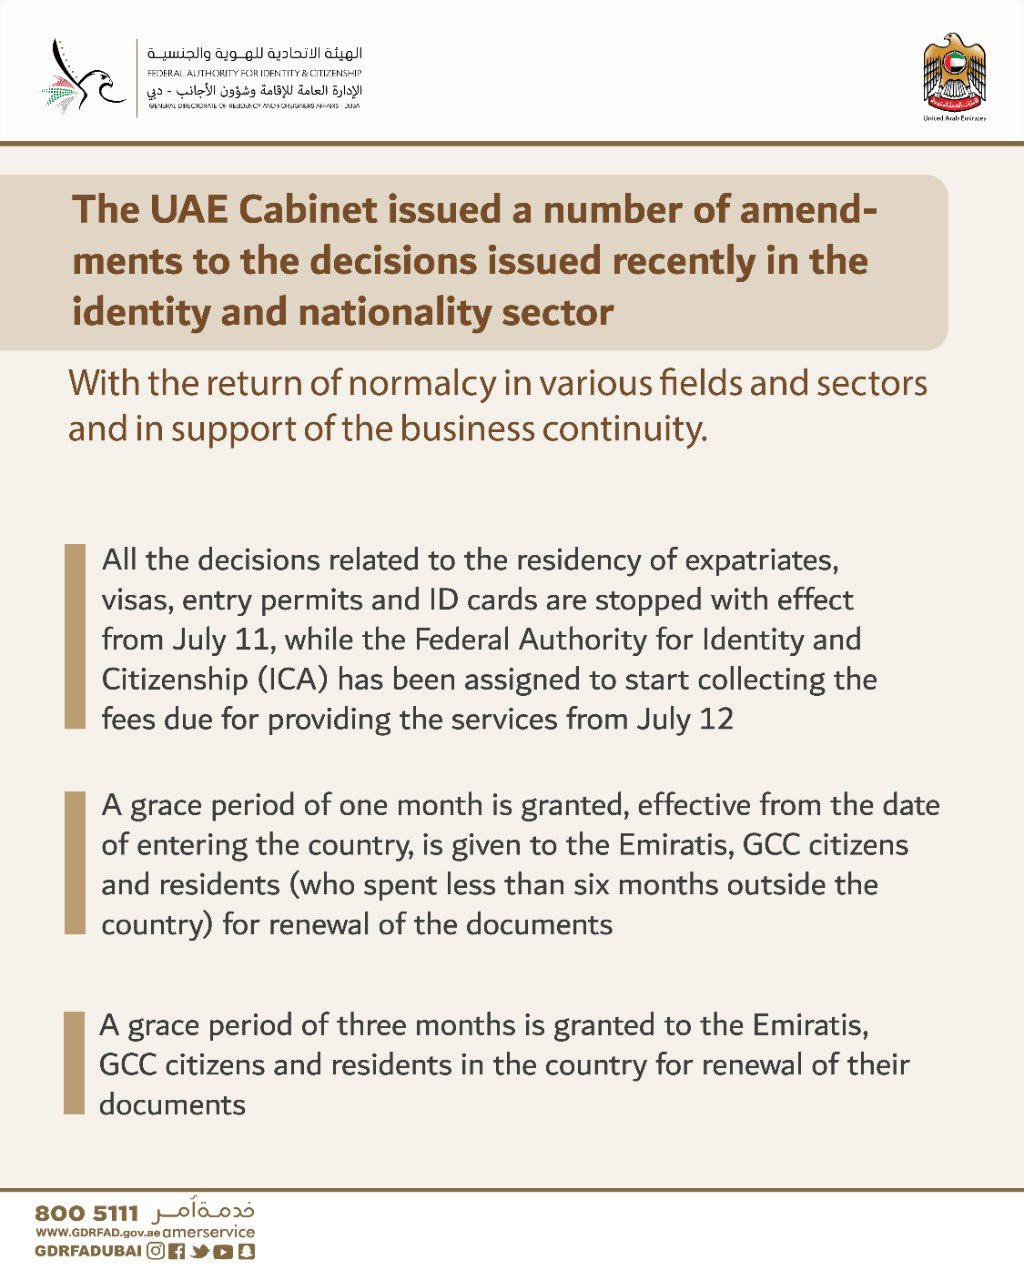 The decisions issued recently in the identity and nationality sector In dubai